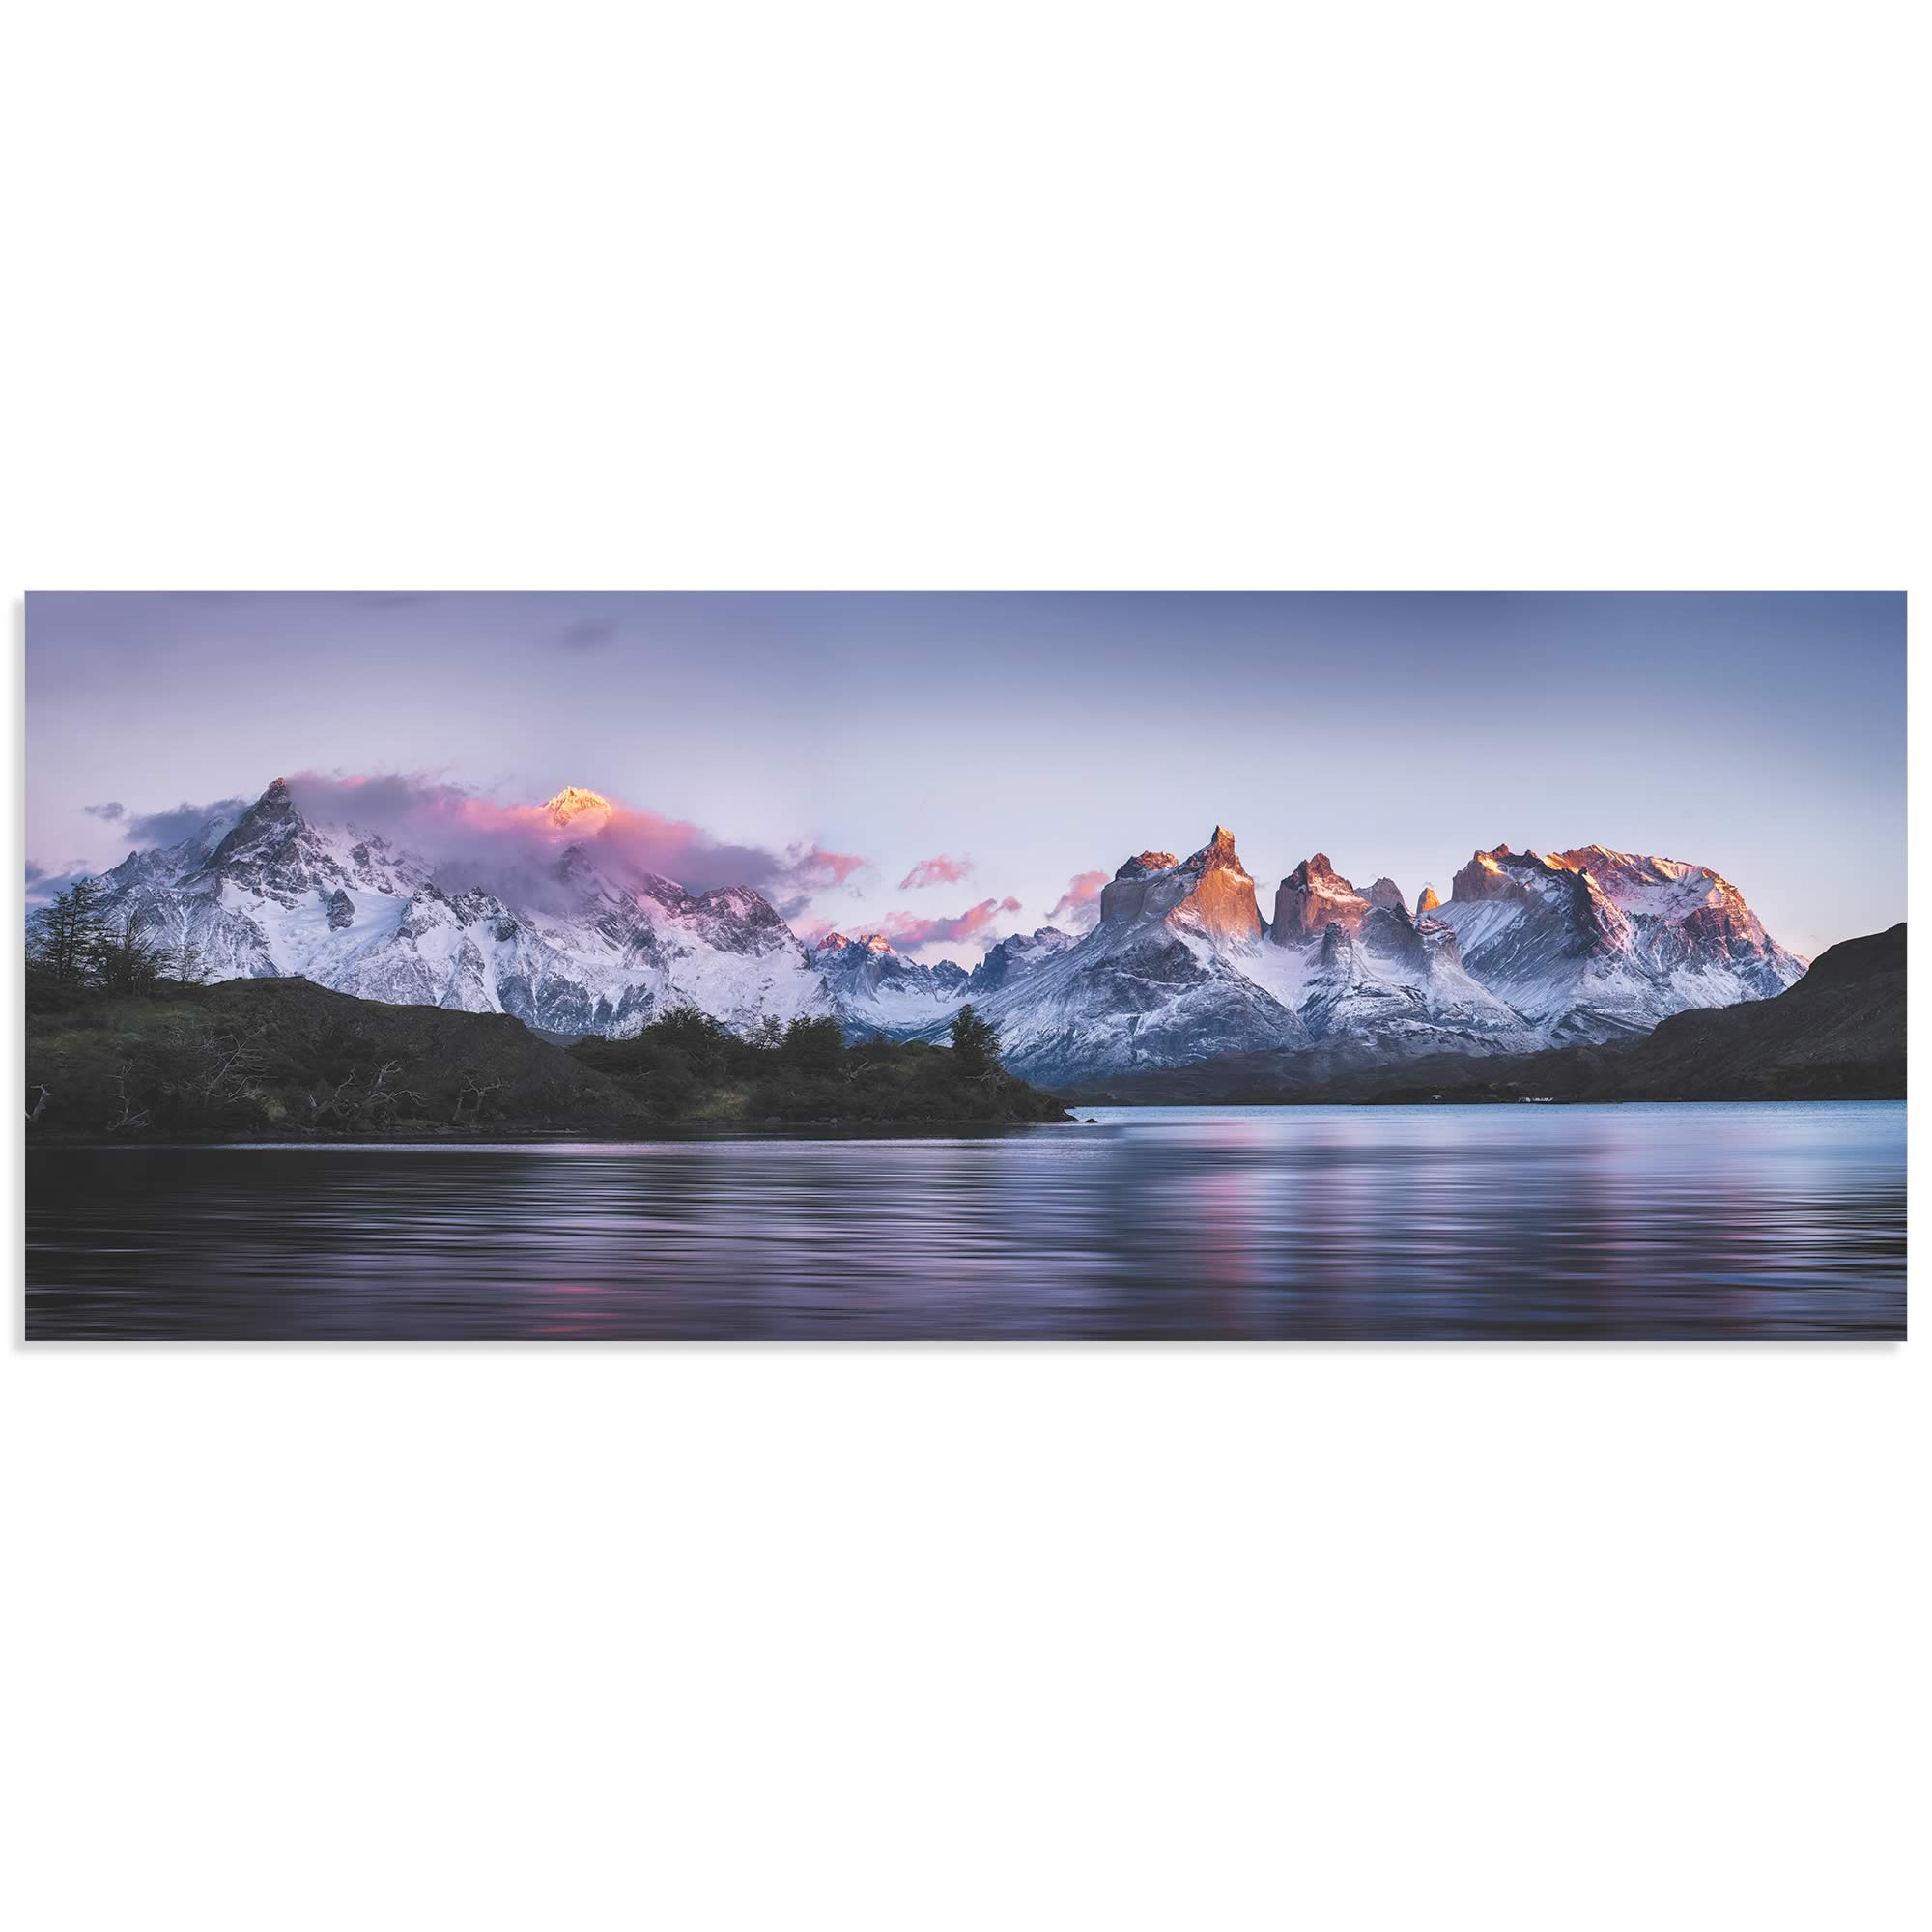 Torres del Paine by Ignacio Palacios - Landscape Art on Metal or Acrylic